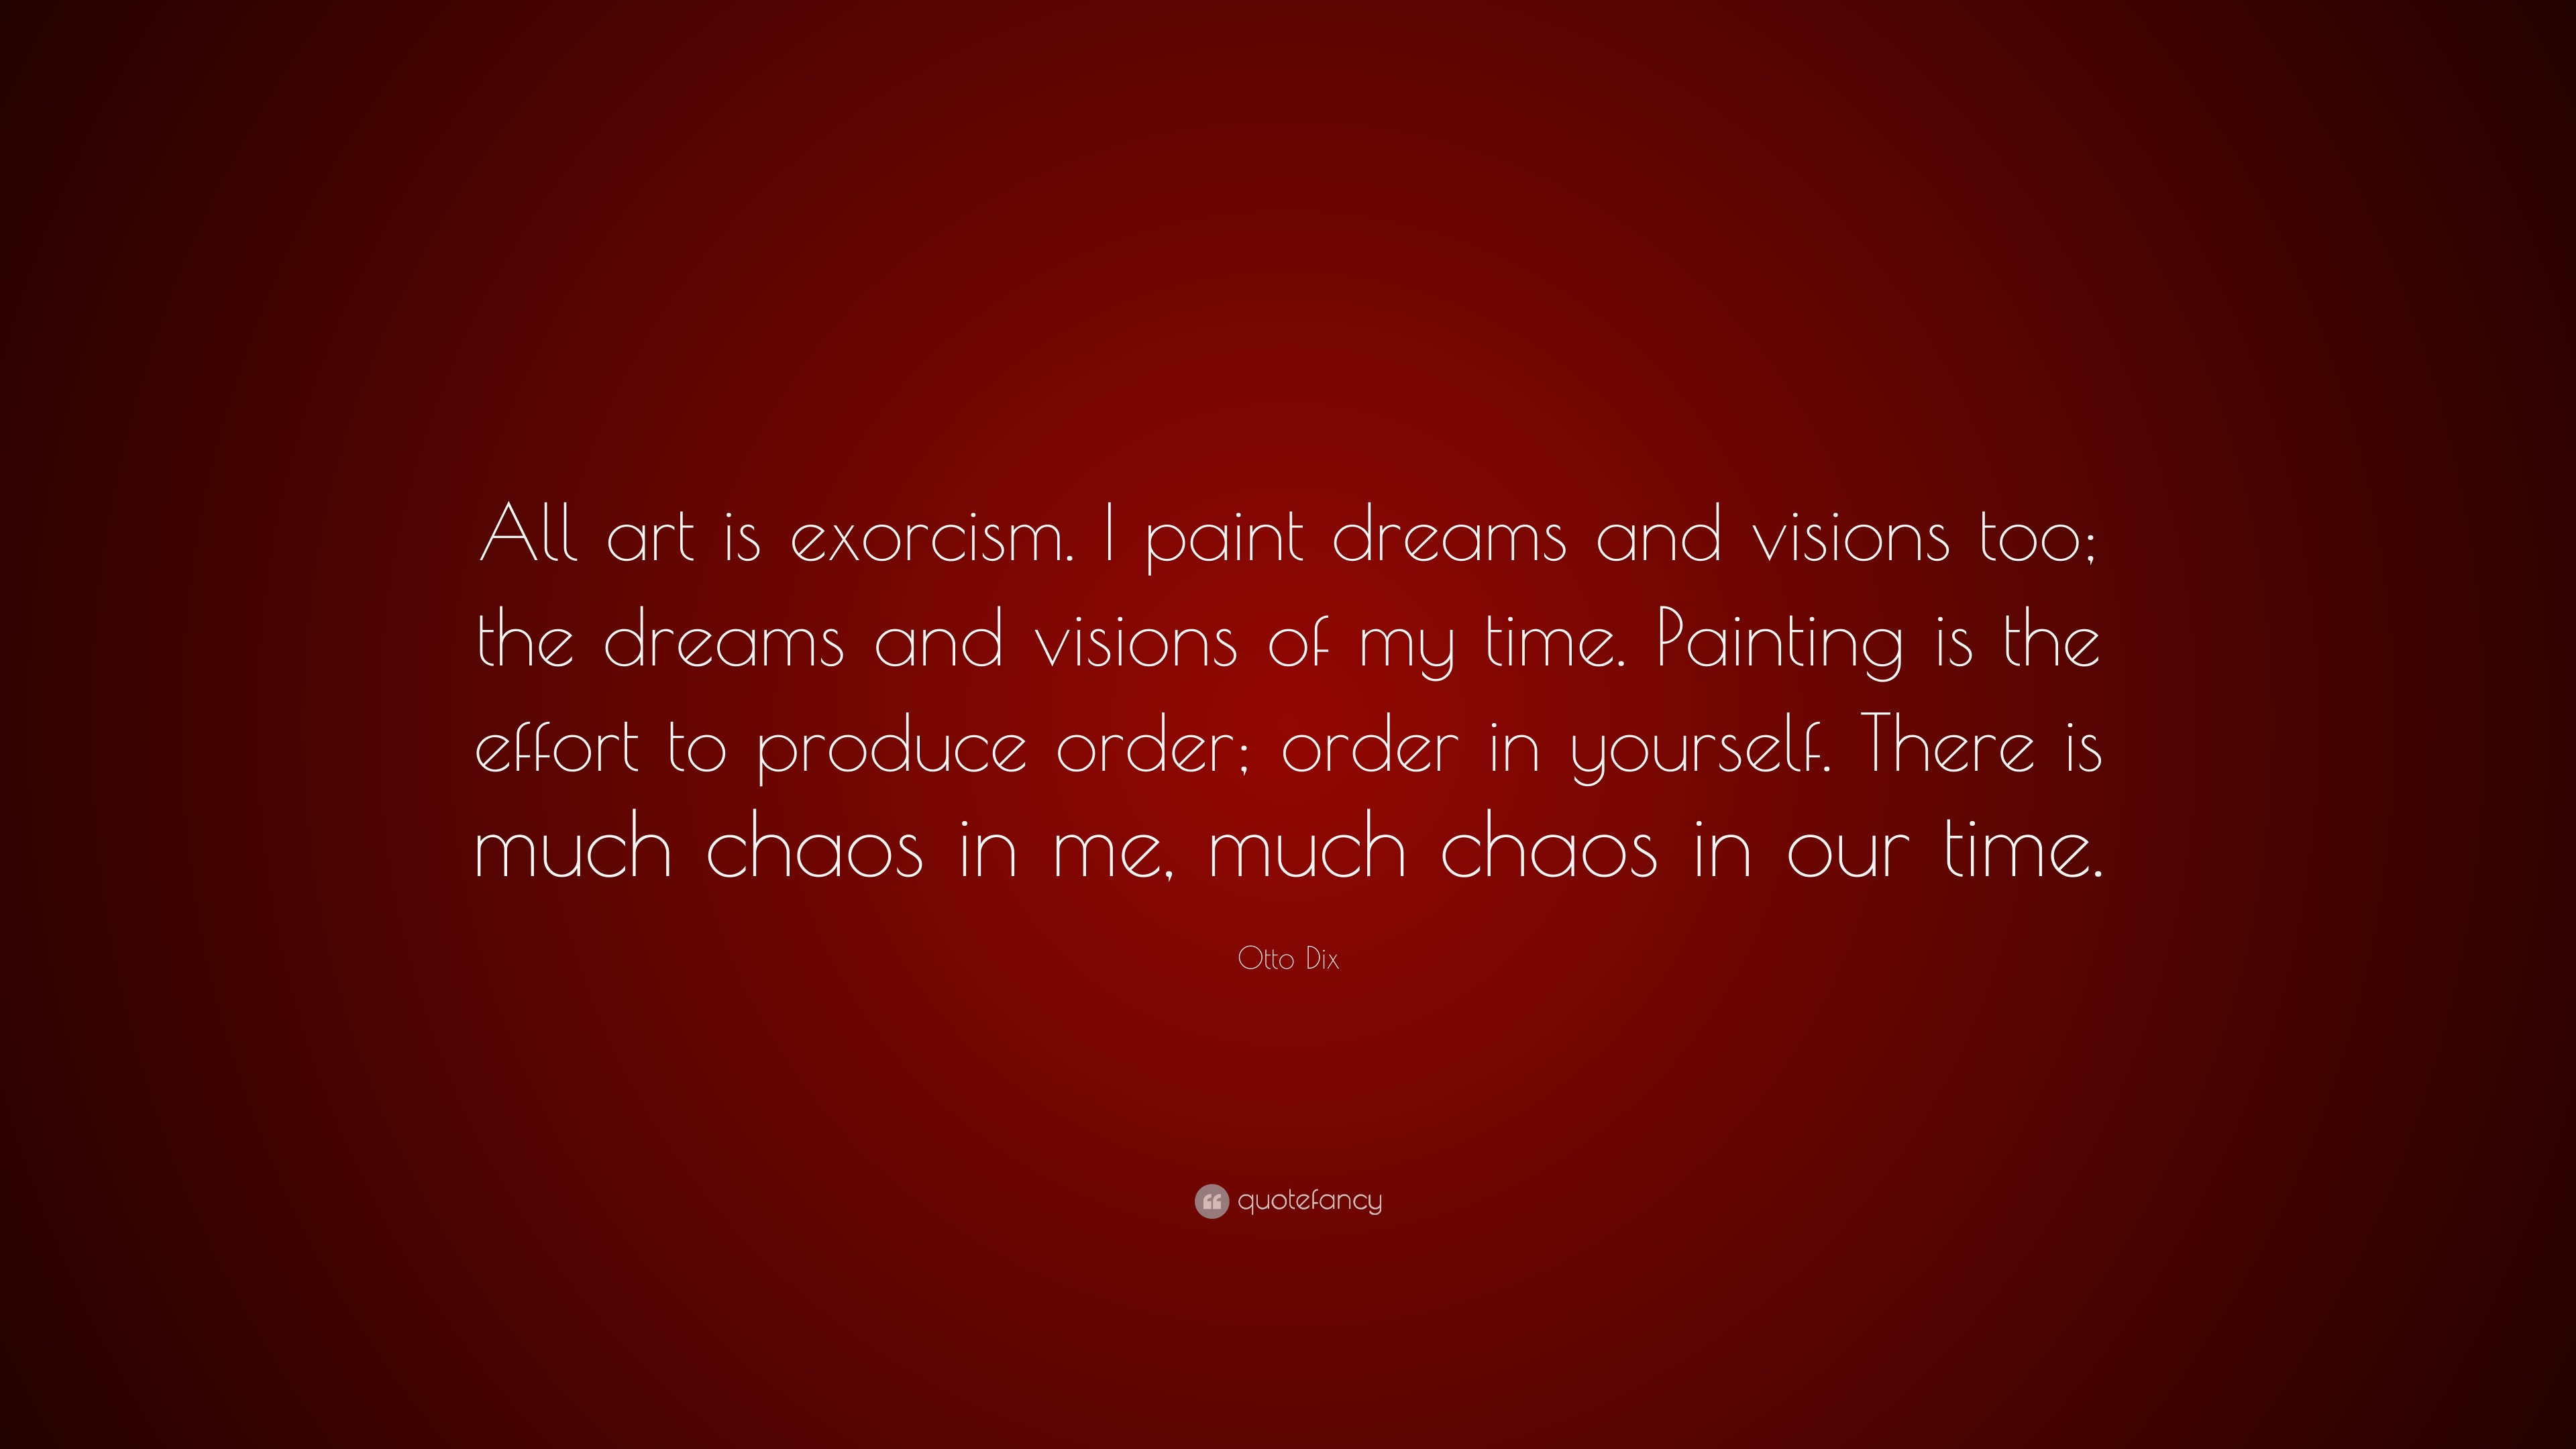 Otto dix quote all art is exorcism i paint dreams and visions too otto dix quote all art is exorcism i paint dreams and visions too solutioingenieria Images